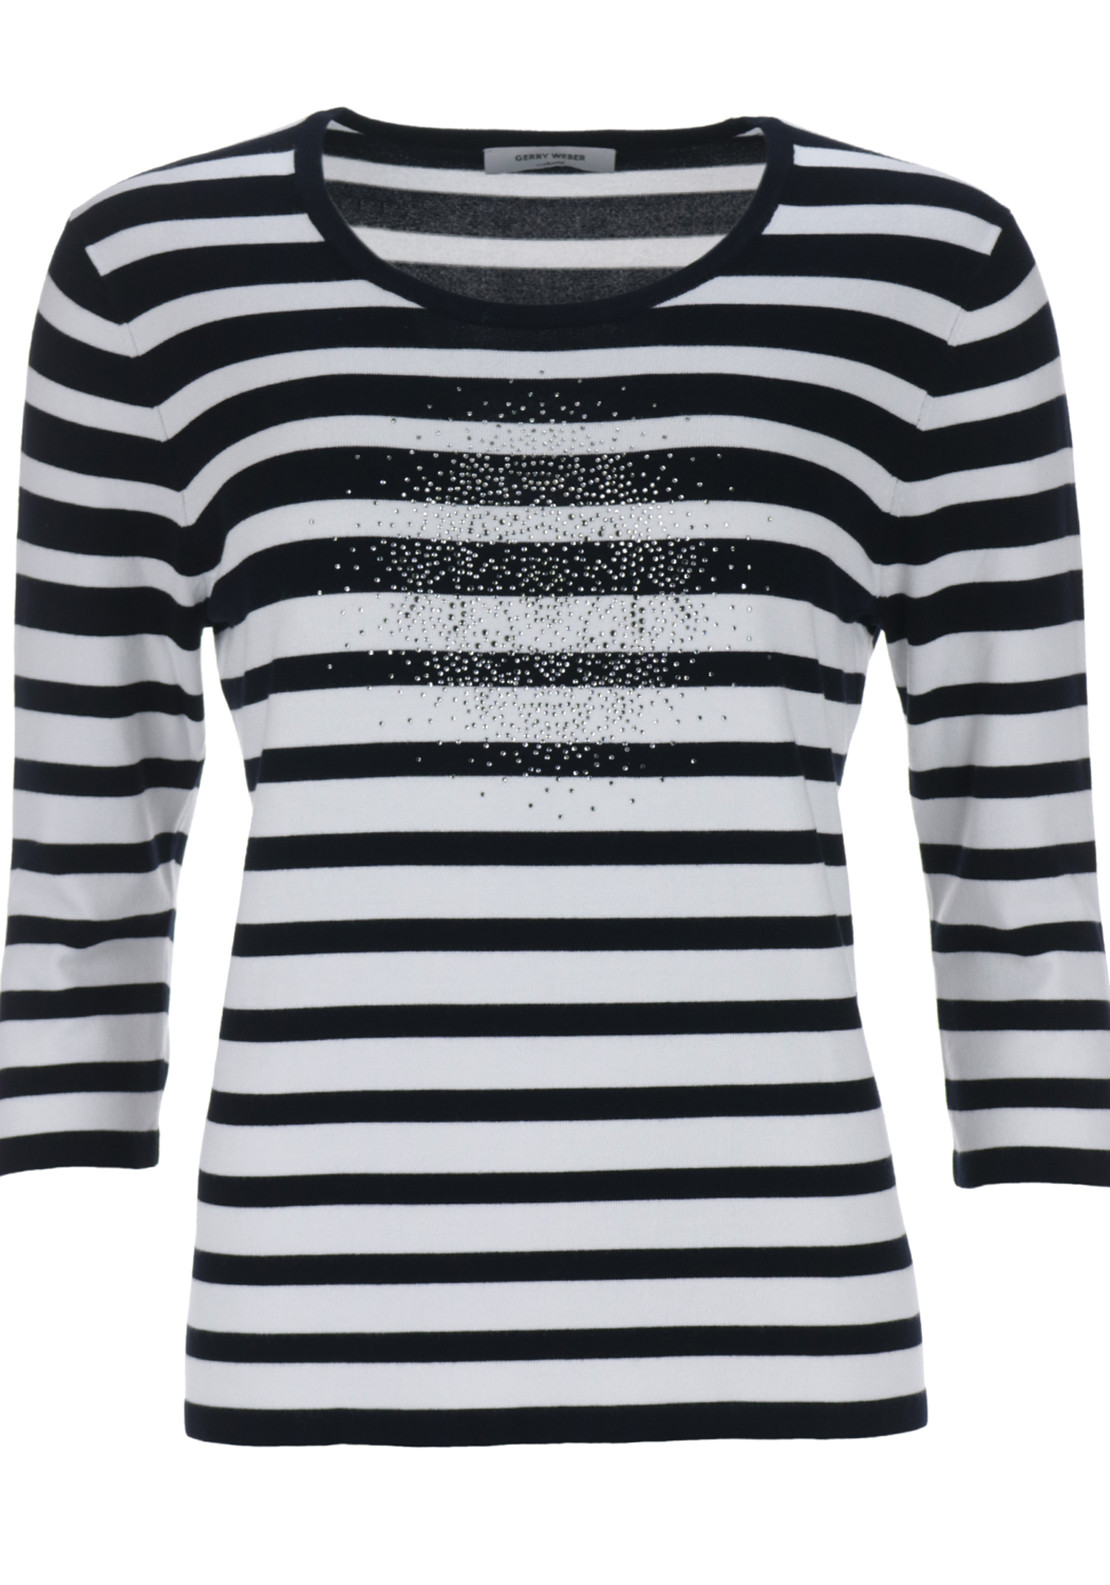 Gerry Weber Striped Knitwear Jumper with Studded Detail, Black and White